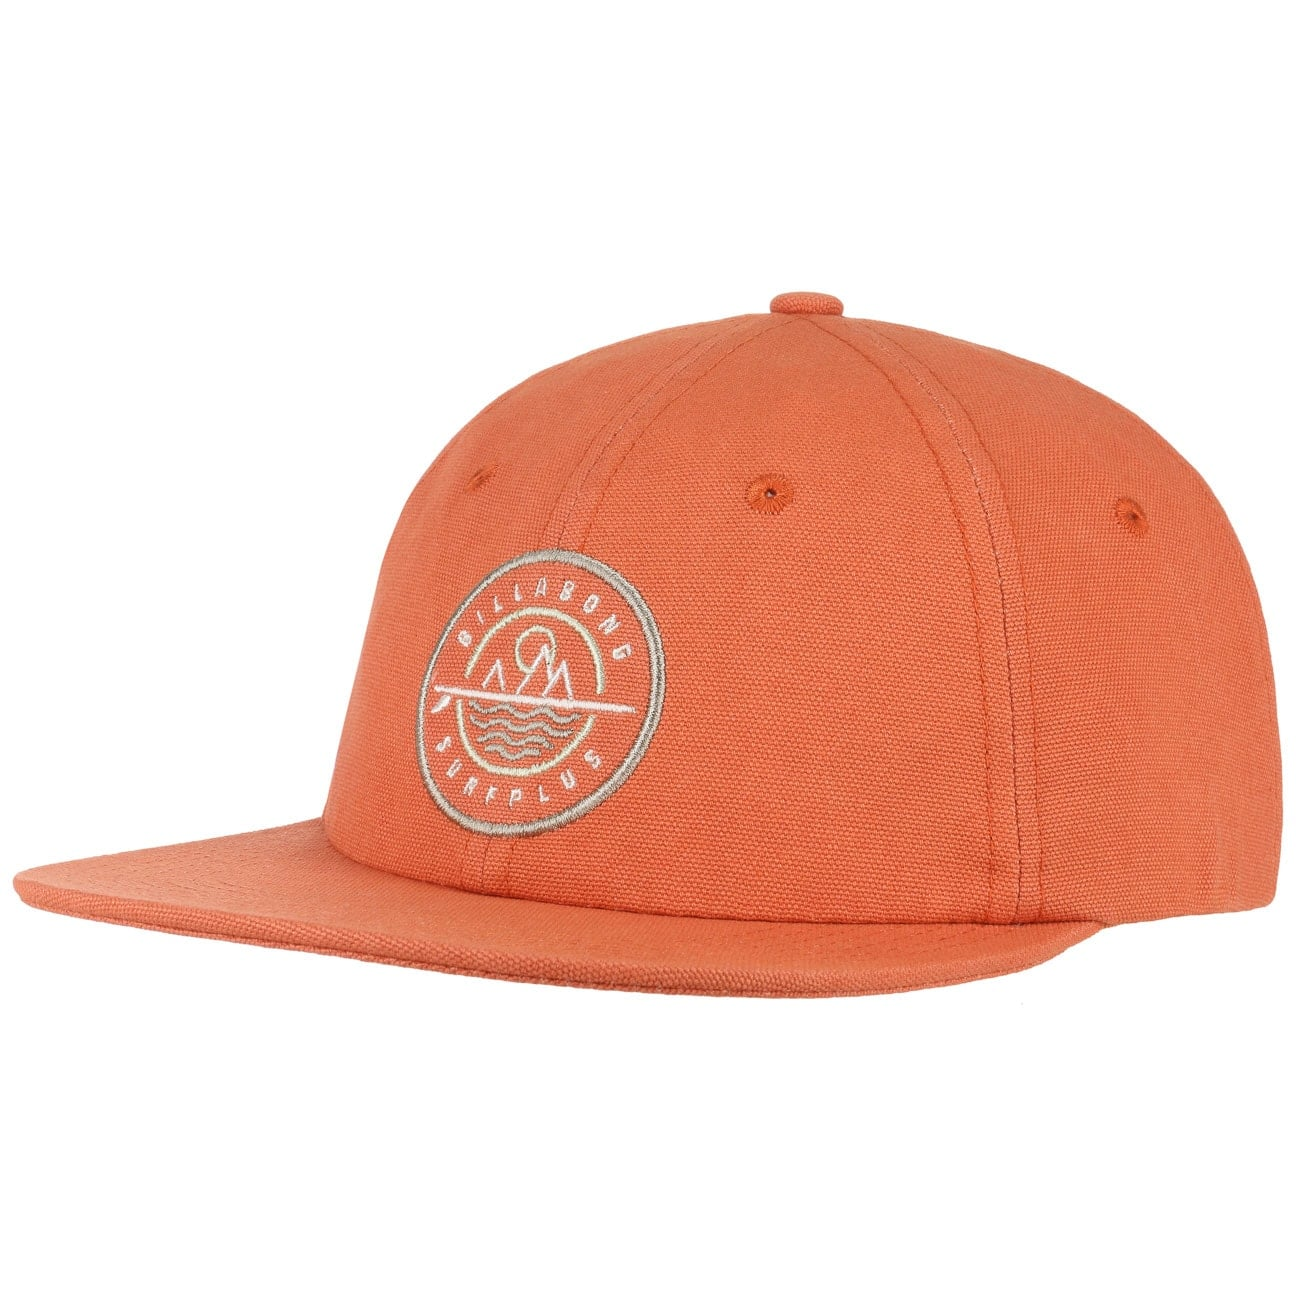 Gorra Crossboard Snapback by Billabong  gorra de baseball